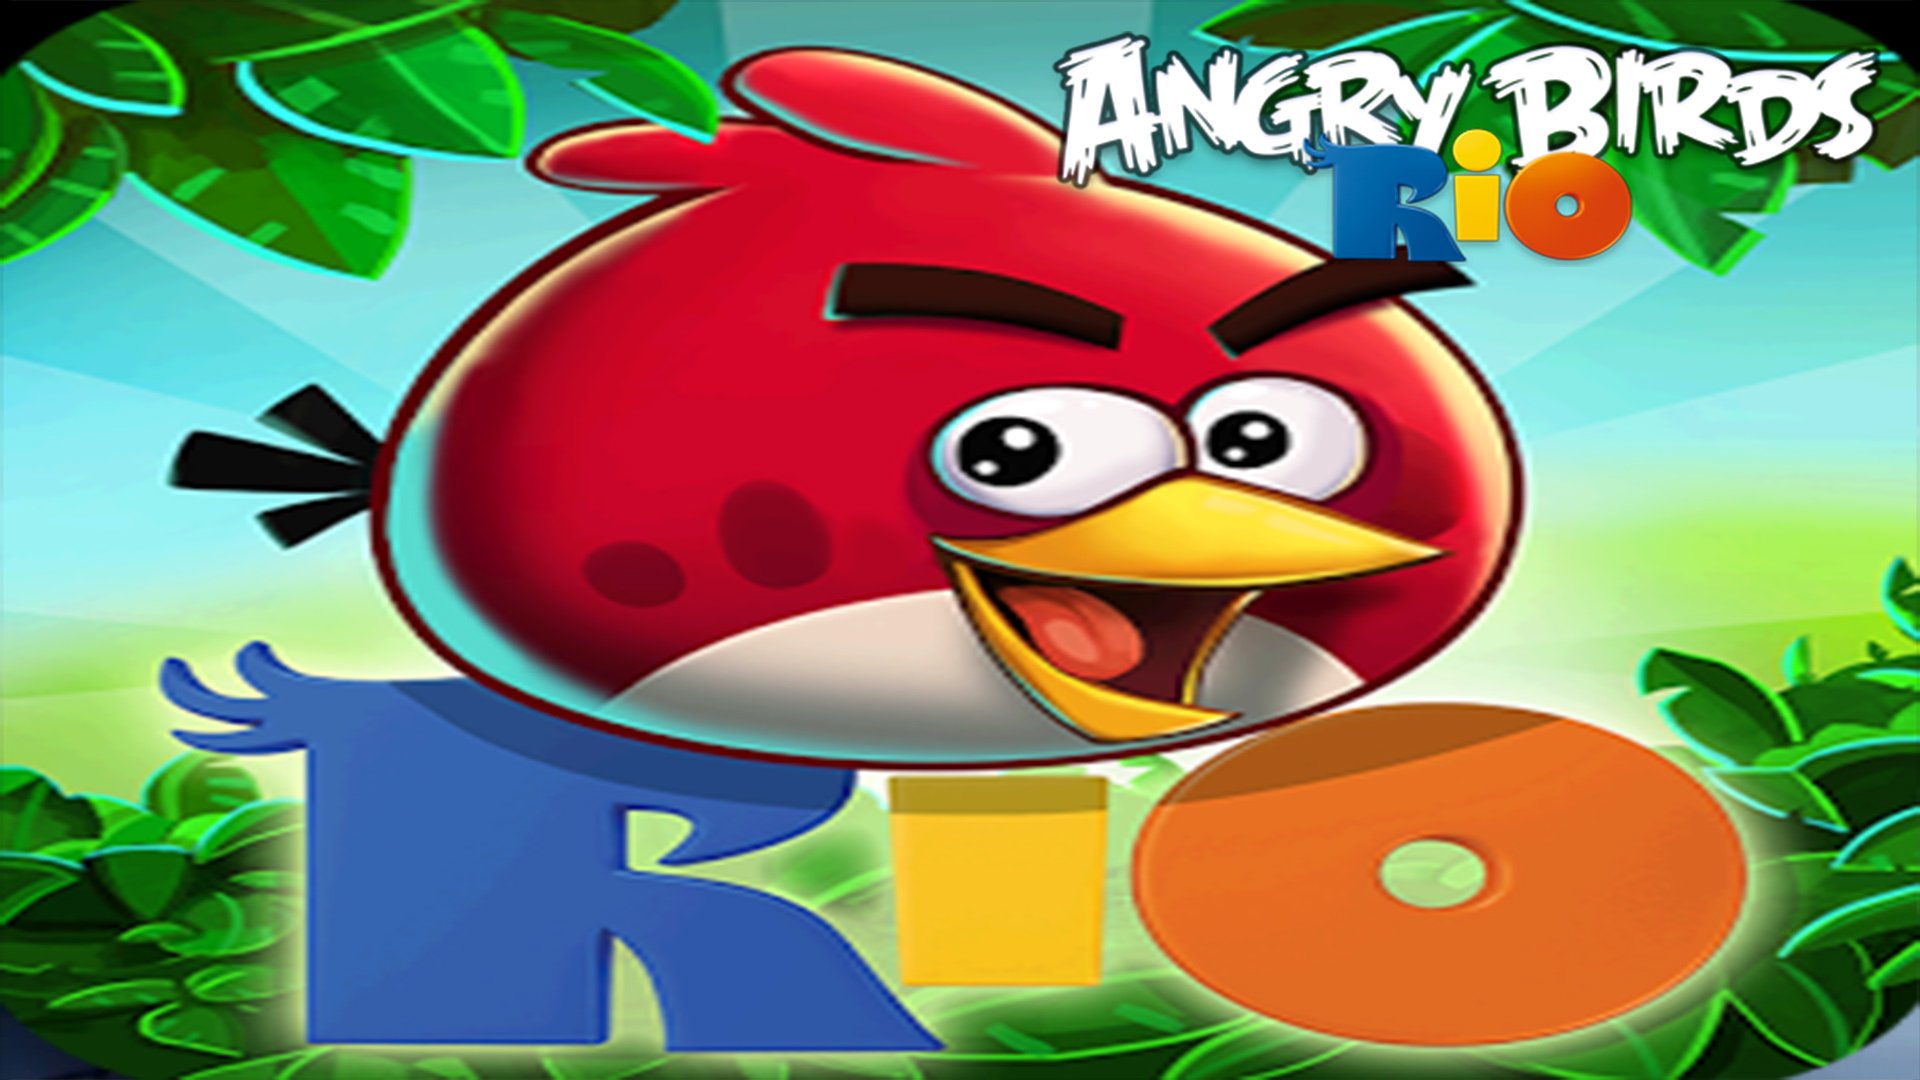 angry birds rio details launchbox games database. Black Bedroom Furniture Sets. Home Design Ideas